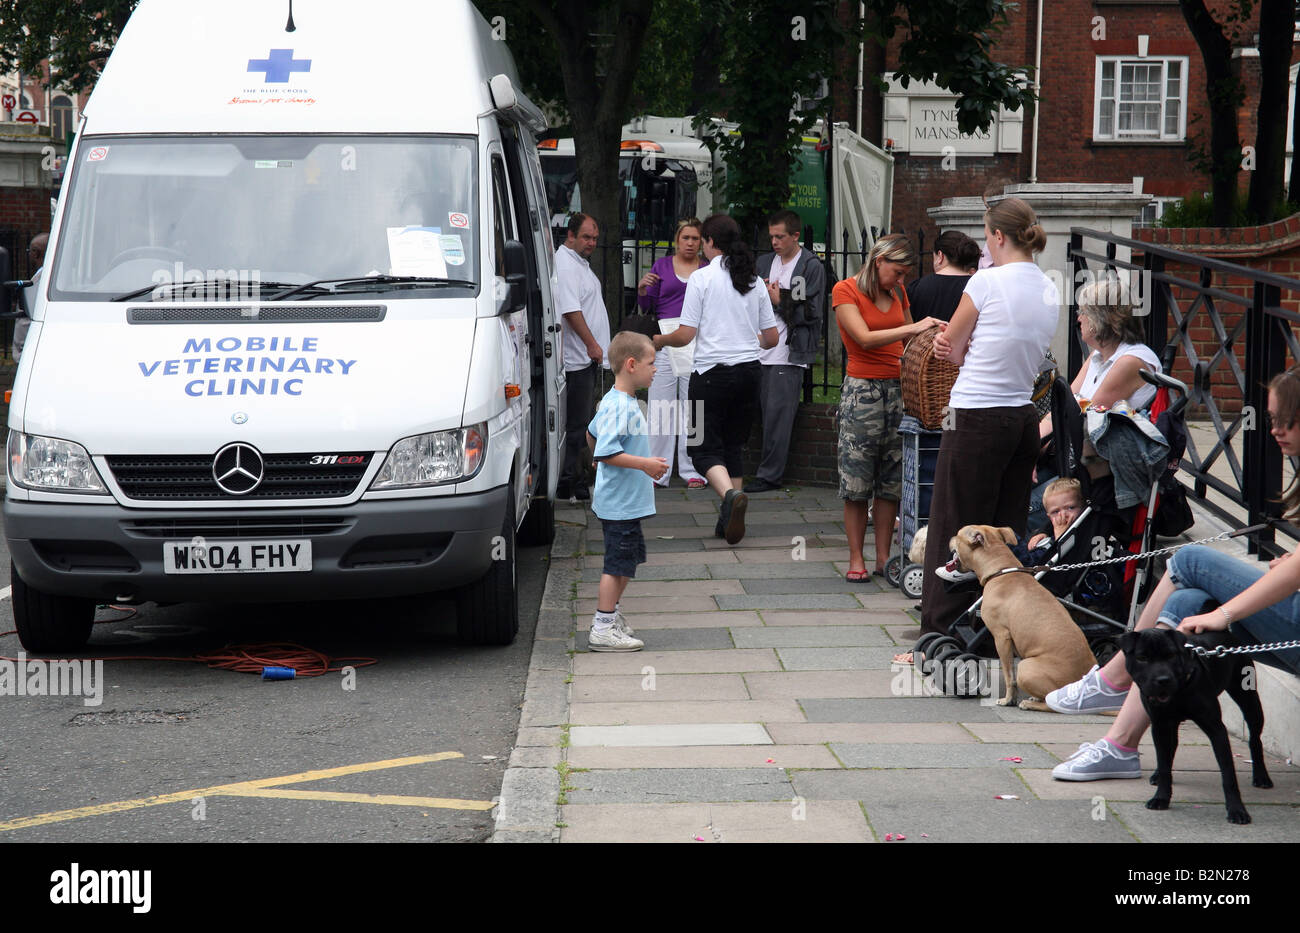 People & their pets wait for mobile vets van, London - Stock Image